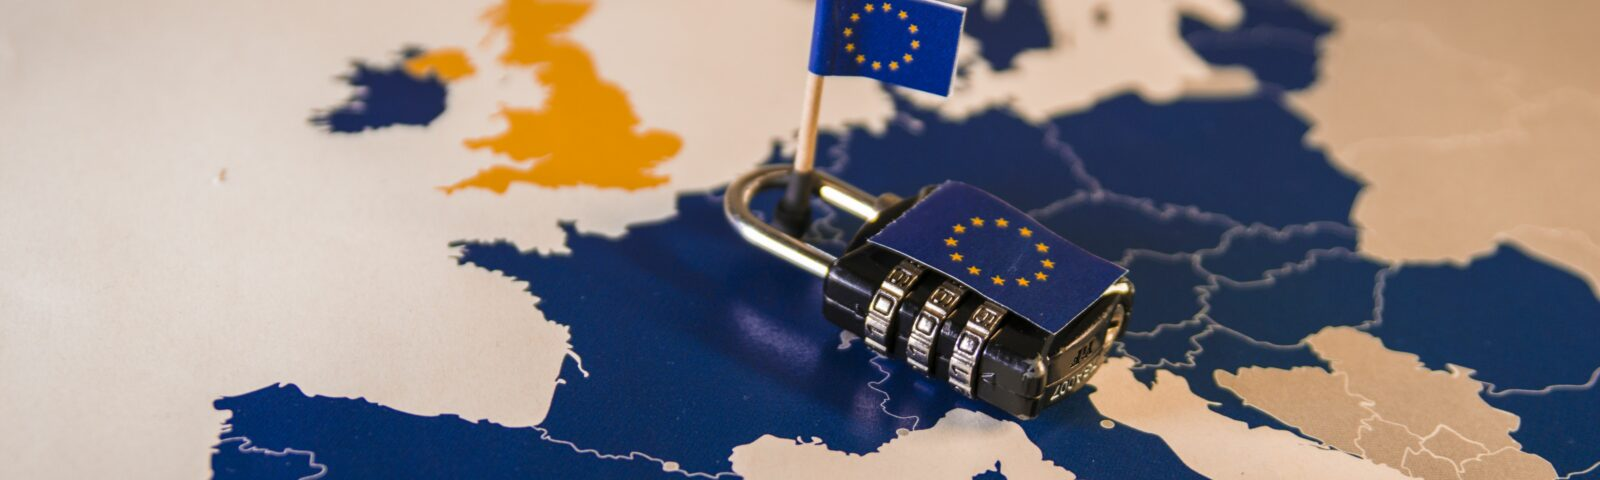 Some thought on Europe's private hostile takeover of the business world